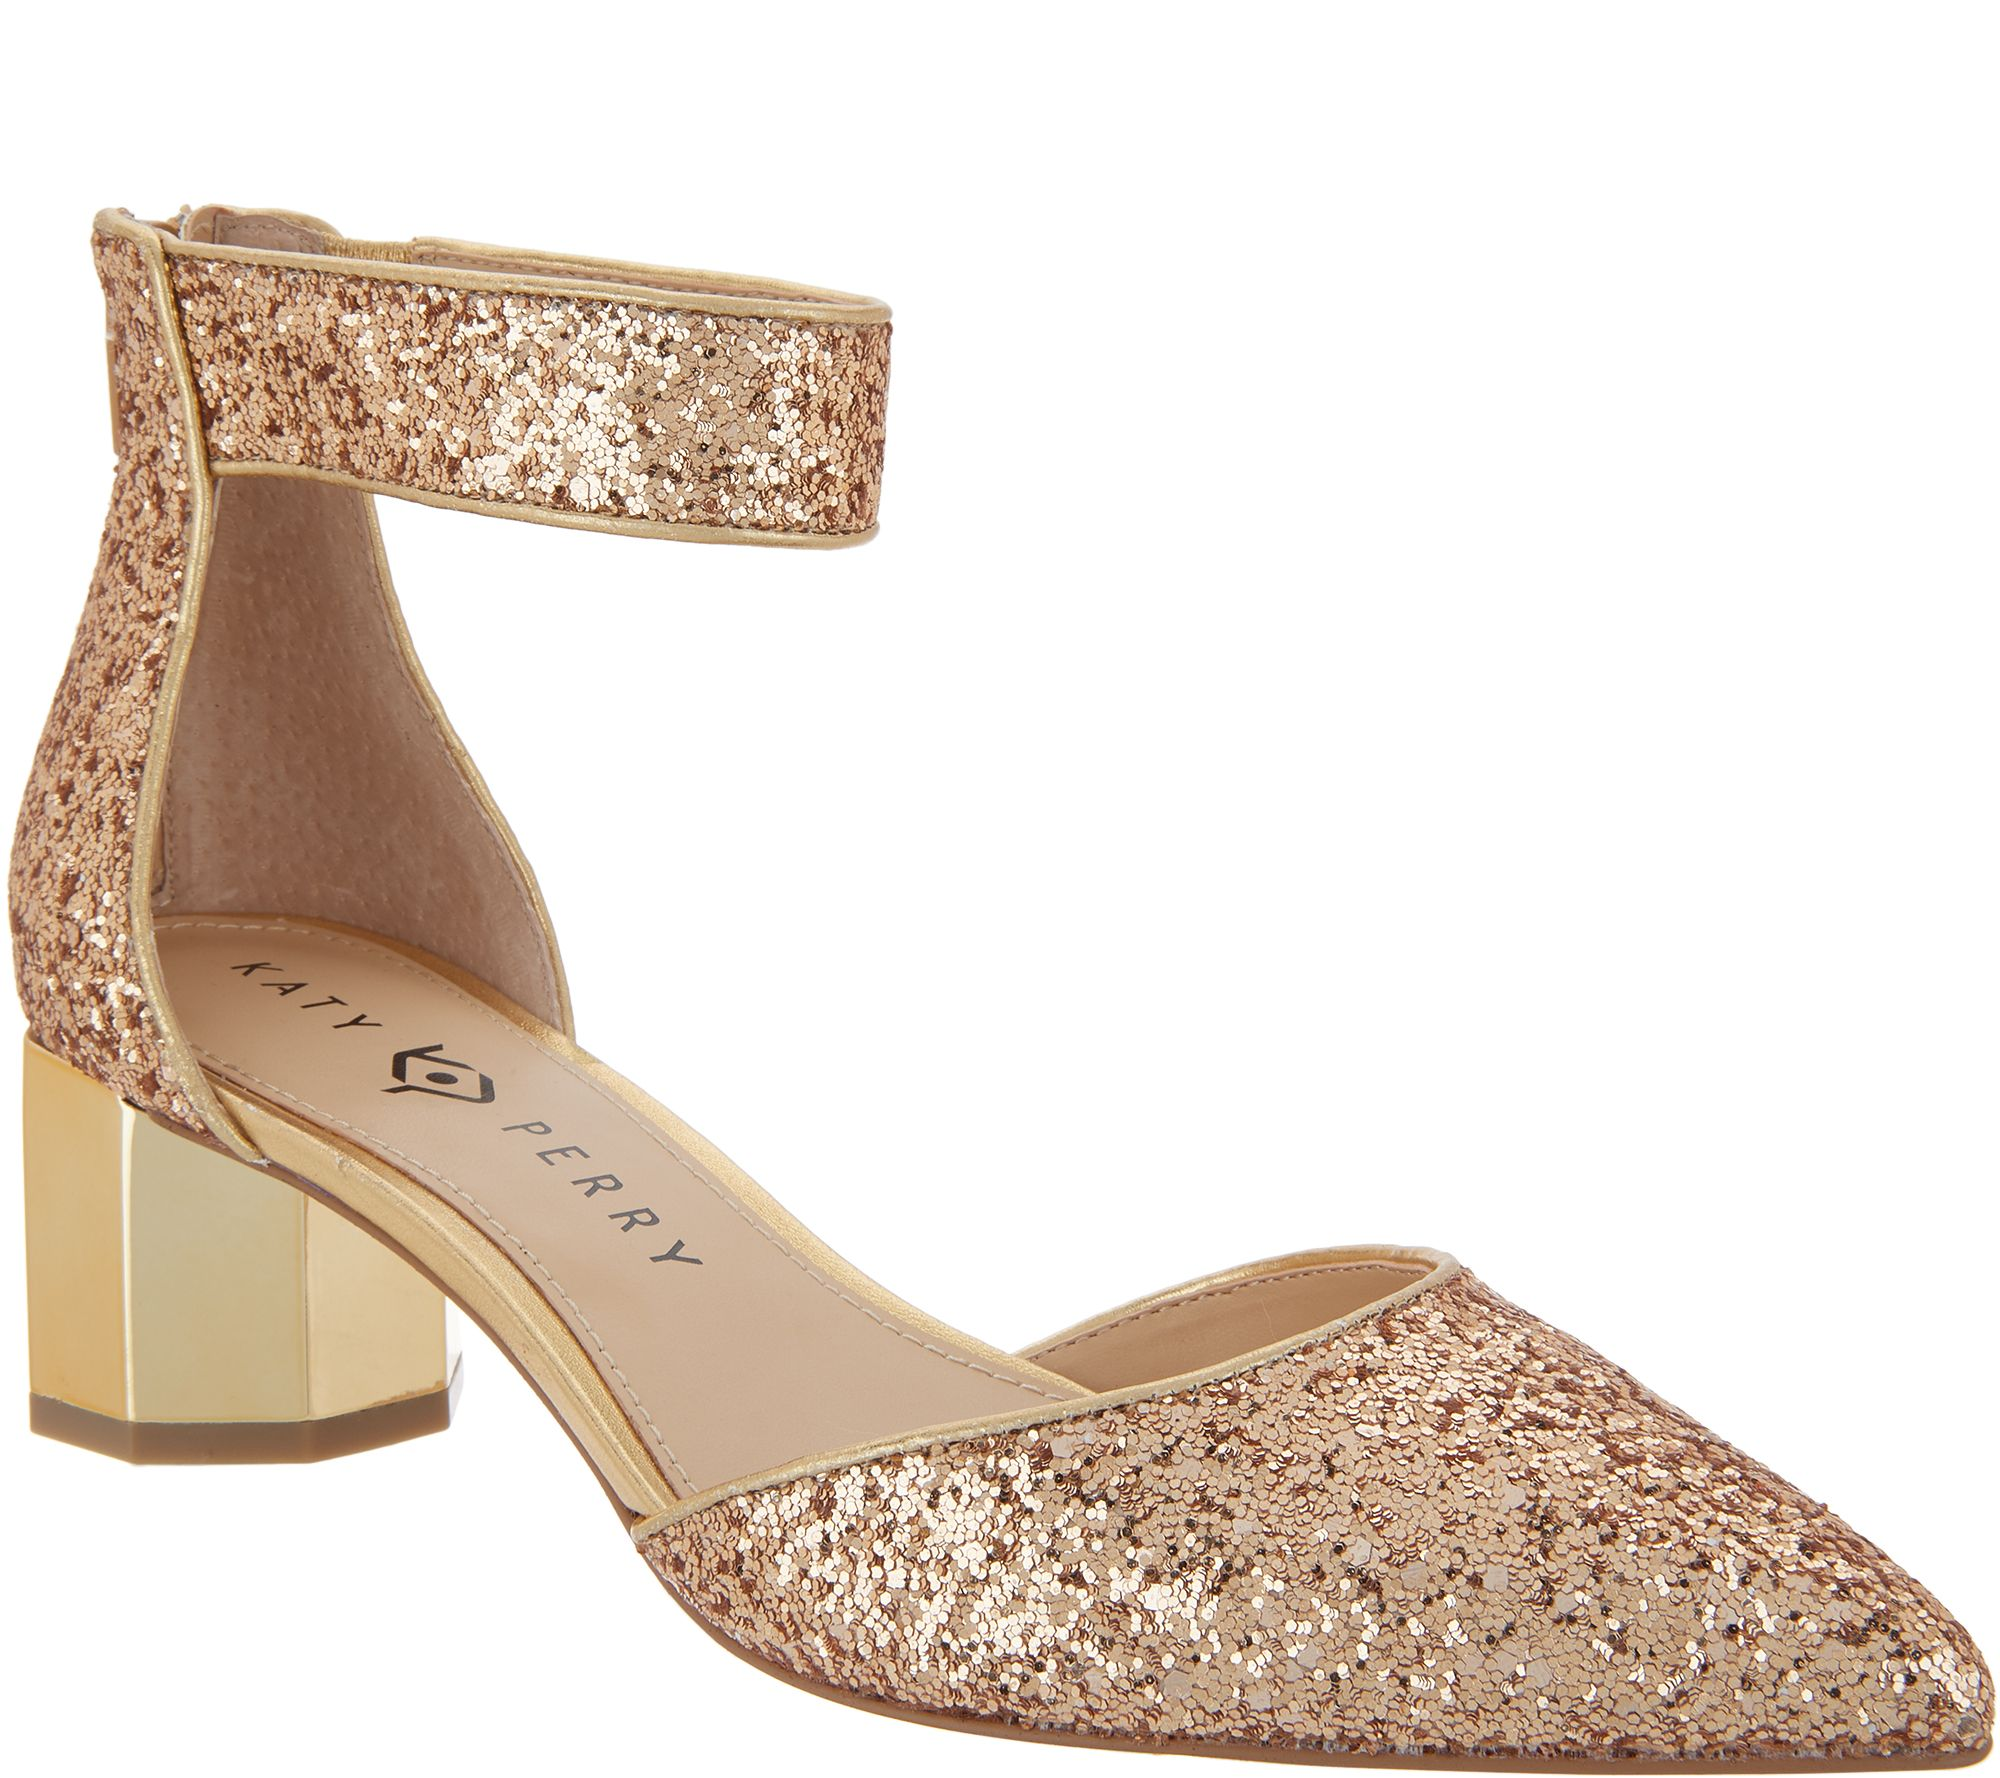 fdc2188a796 Katy Perry Glitter Ankle Strap Pumps - The Jo — QVC.com